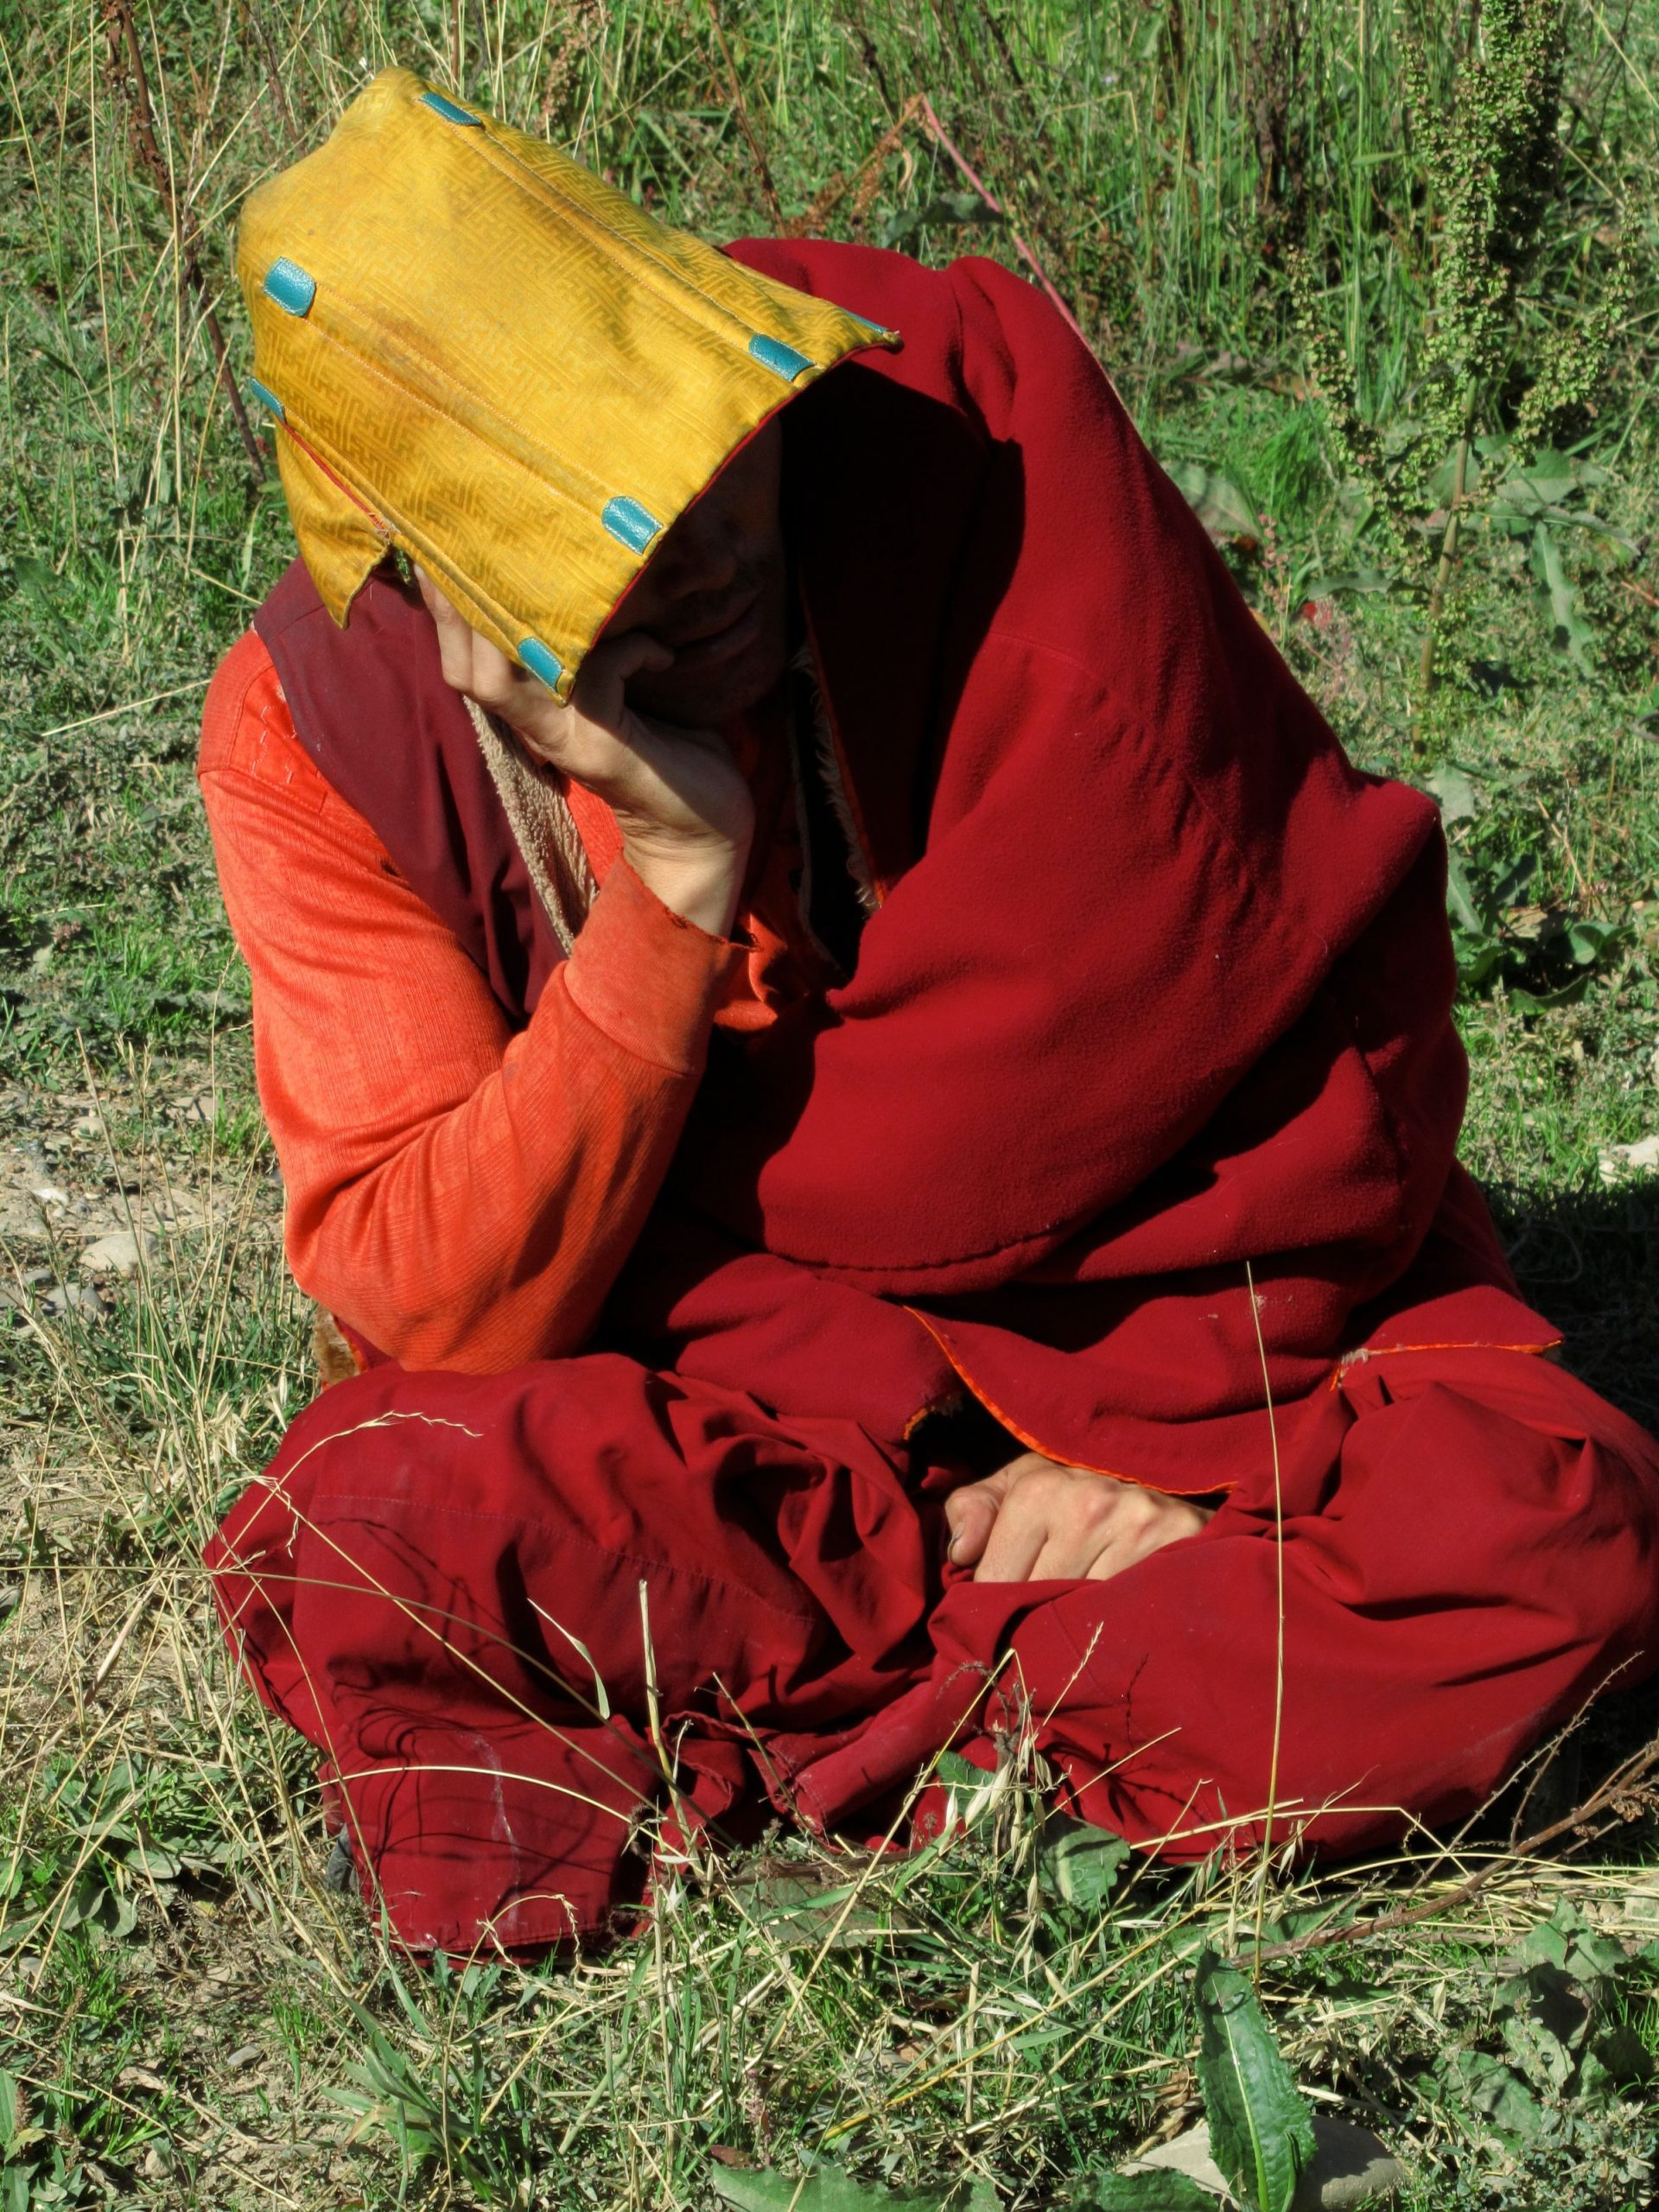 Tired monk, Kham